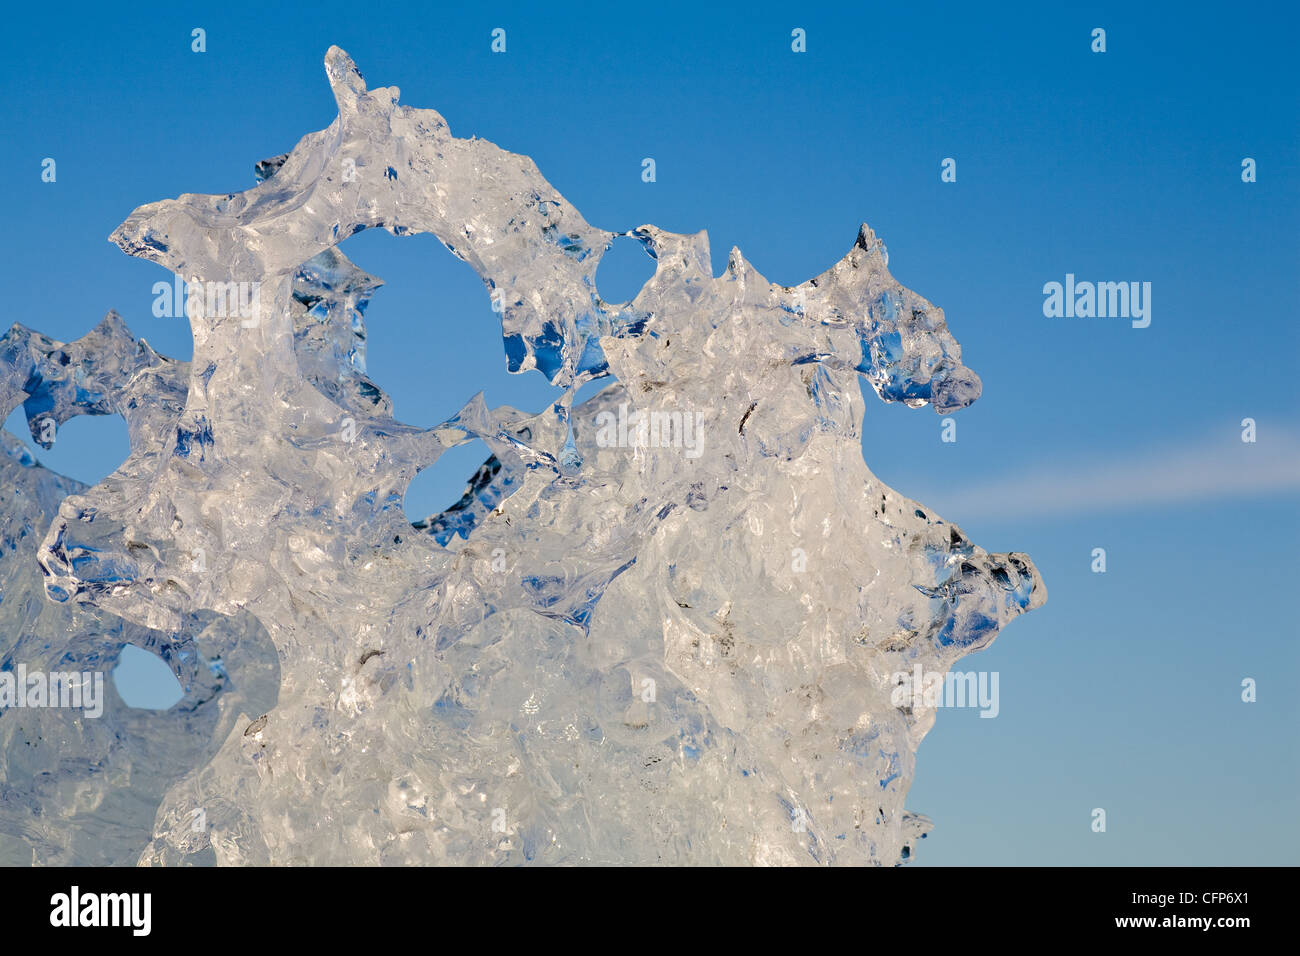 Eis, close-up Stockbild